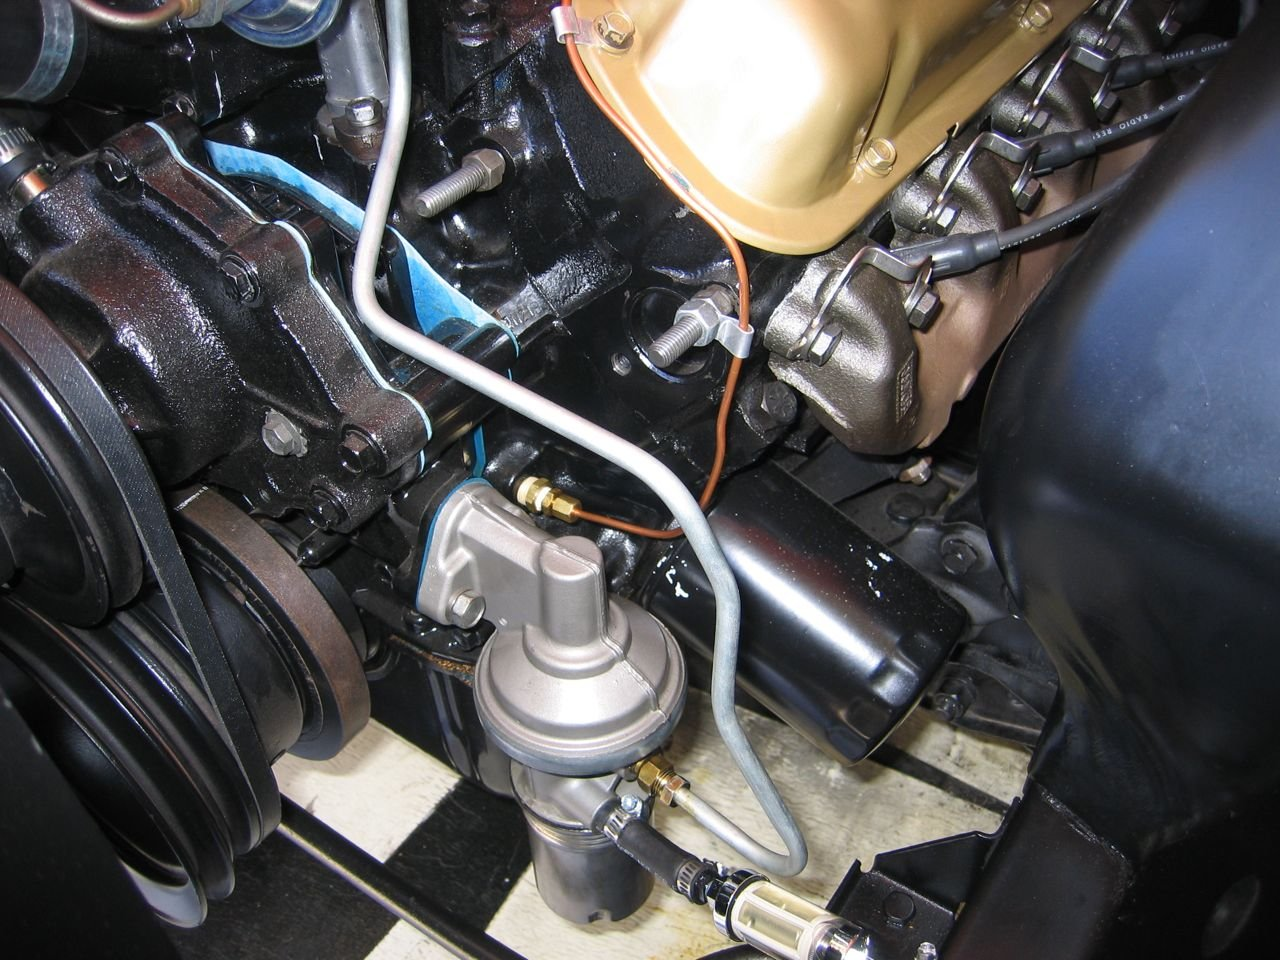 2012 mustang fuel filter location 1965 fuel pump leaking - ford mustang forum 65 mustang fuel filter location #10